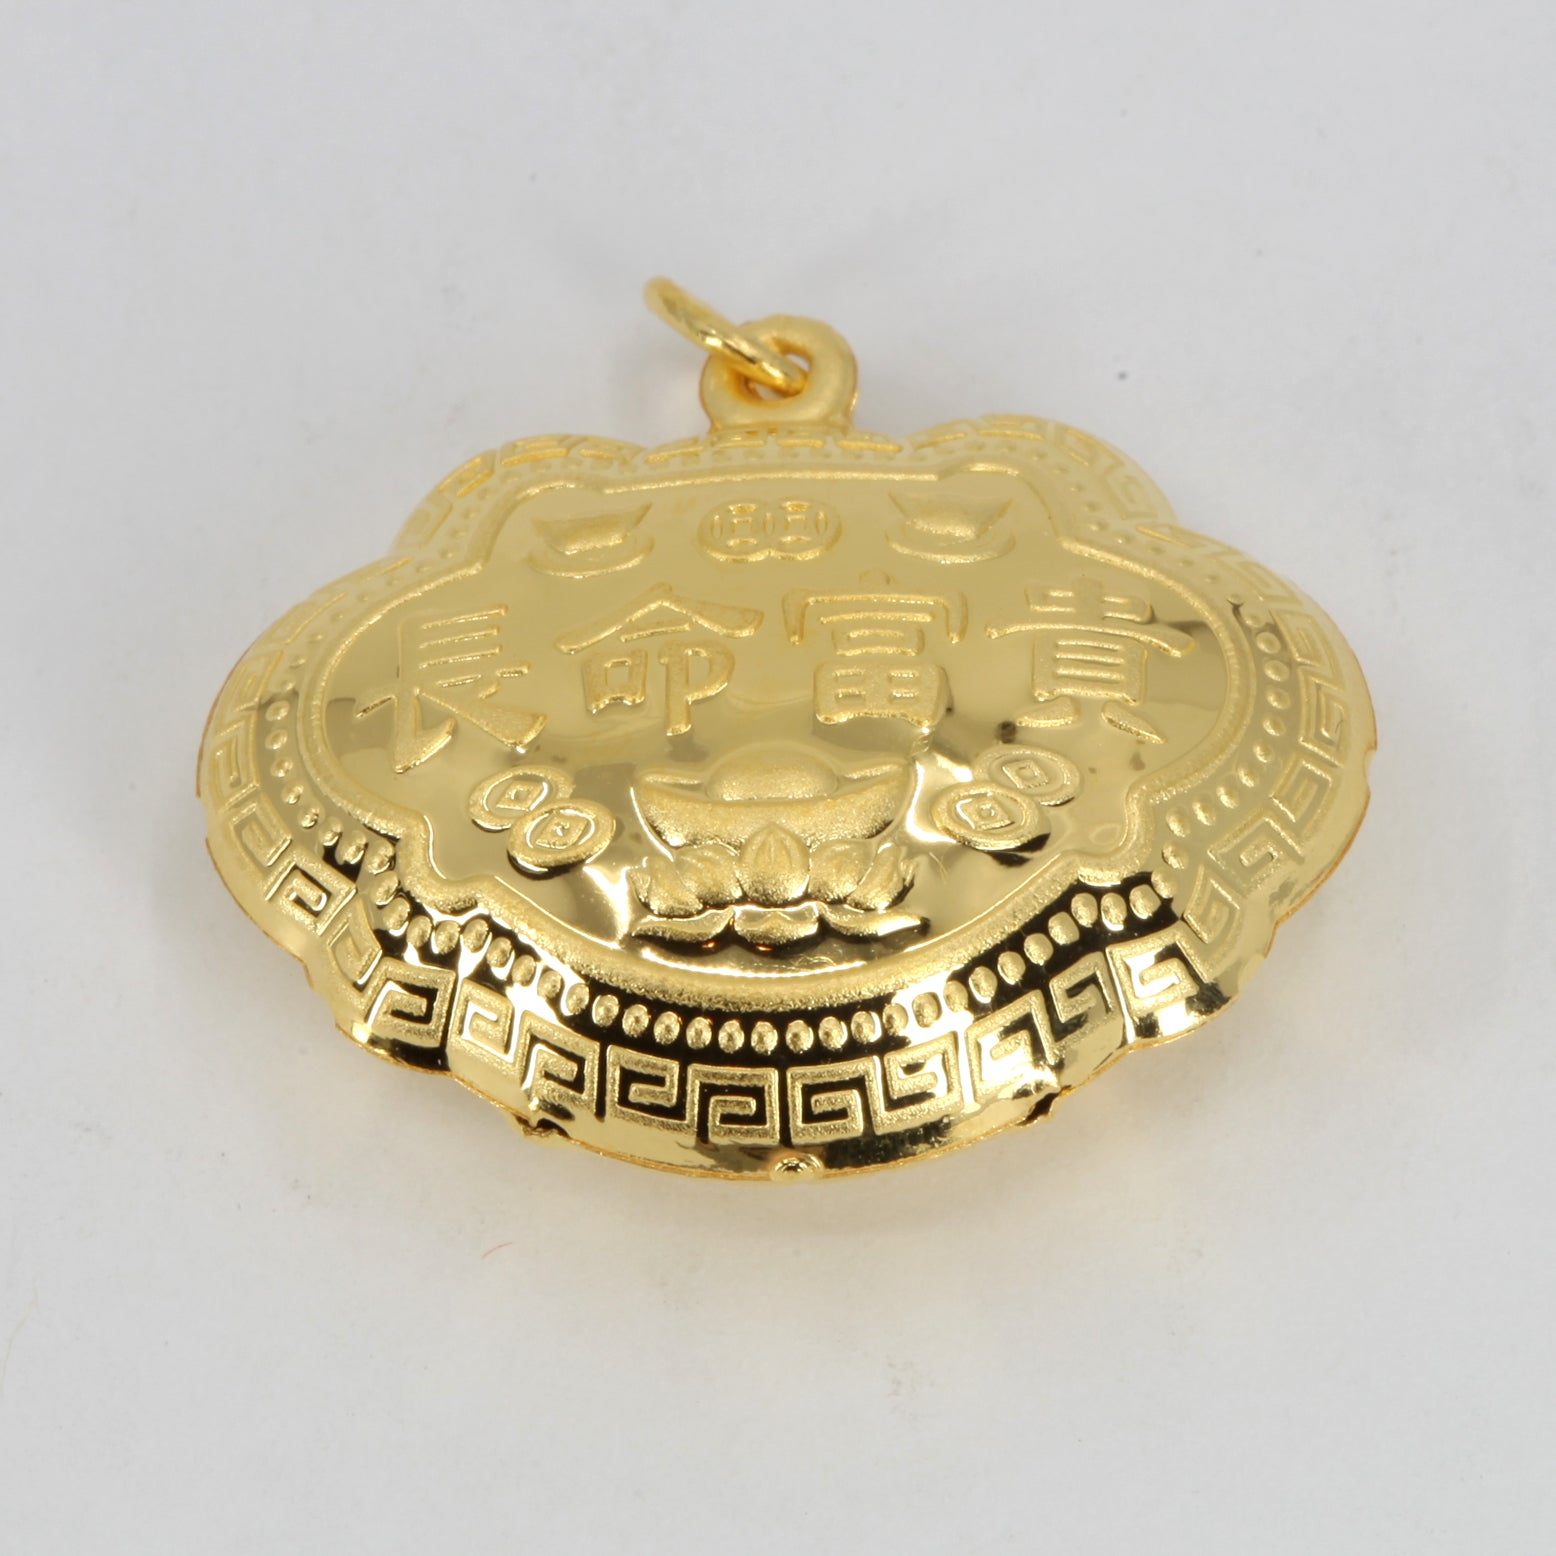 24K Solid Yellow Gold Baby Puffy Longevity Lock Hollow Pendant 5.8 Grams